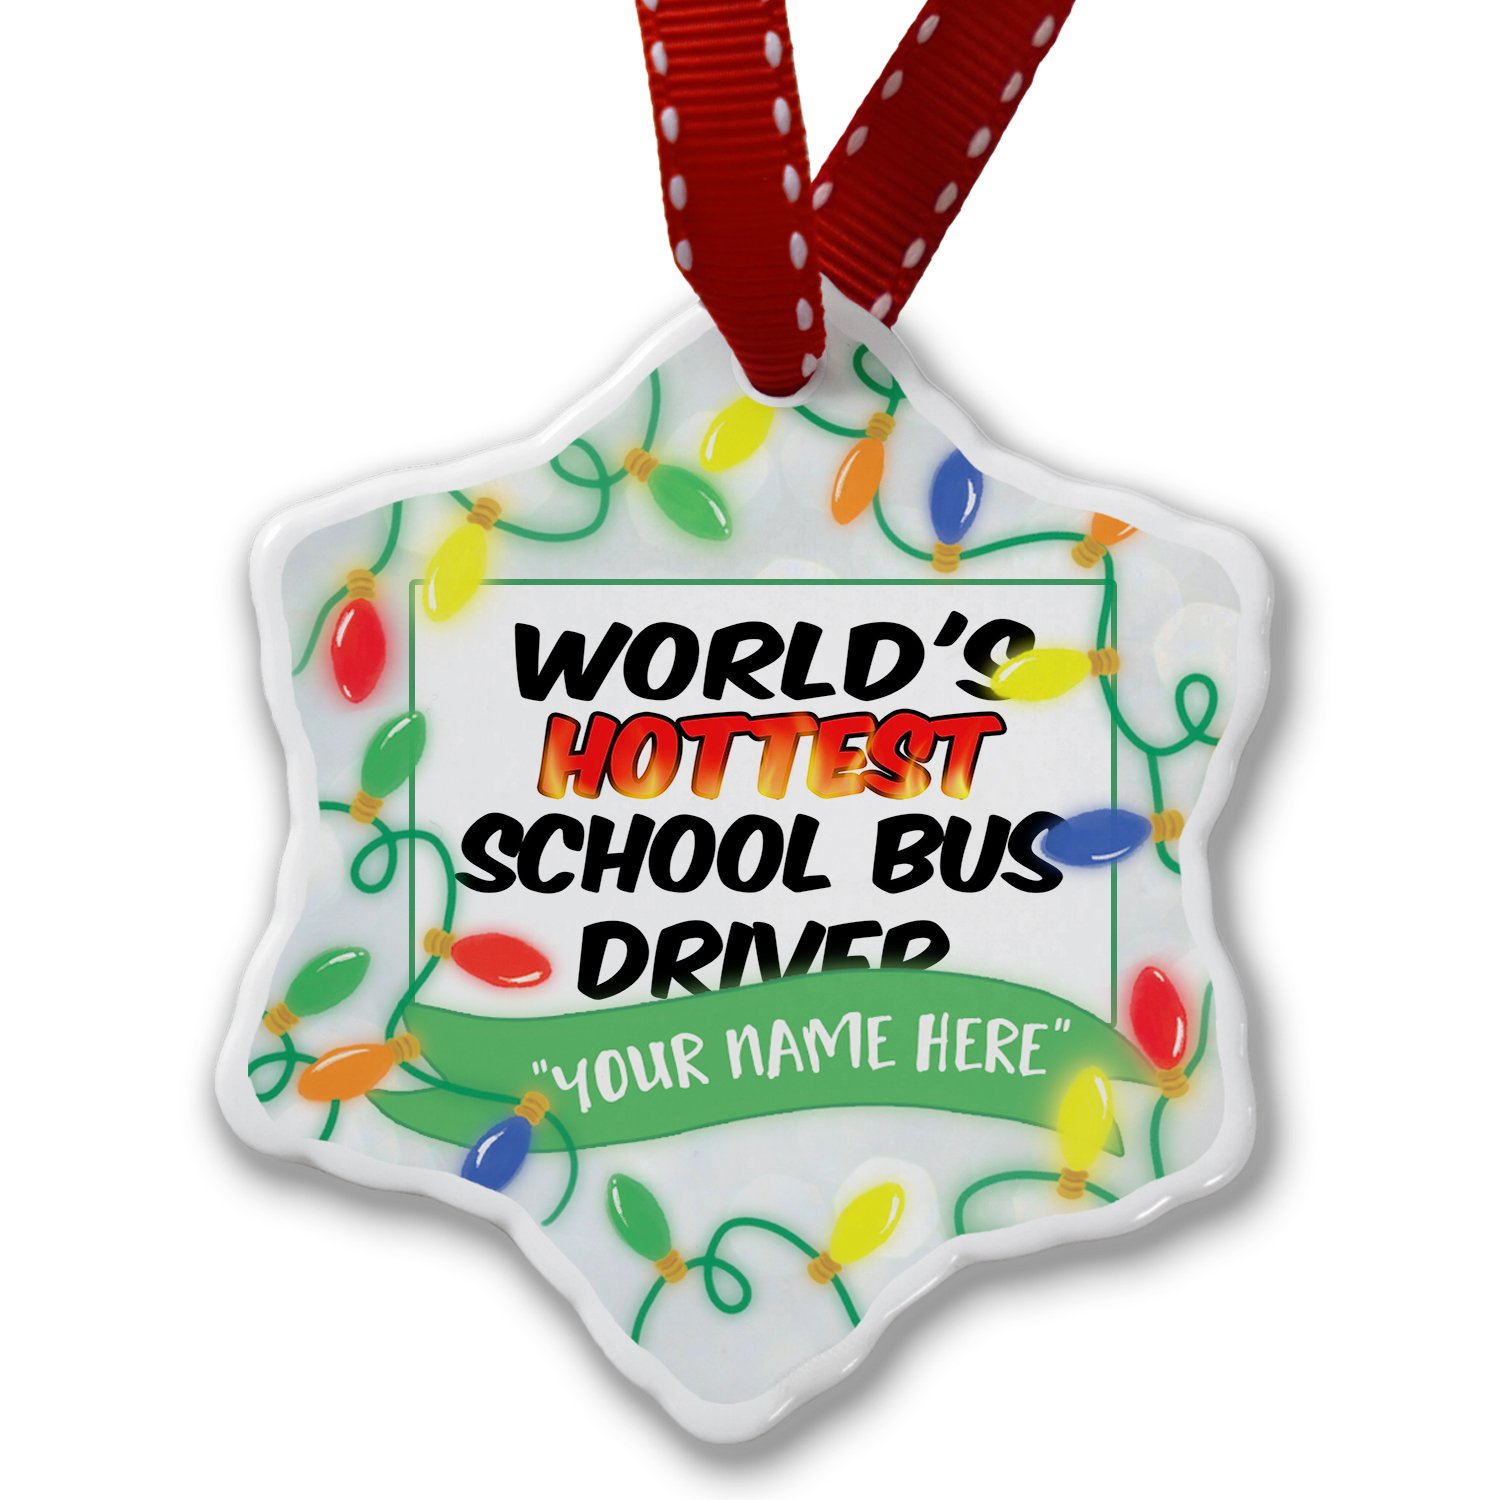 Personalized Name Christmas Ornament, Worlds hottest School Bus Driver NEONBLOND